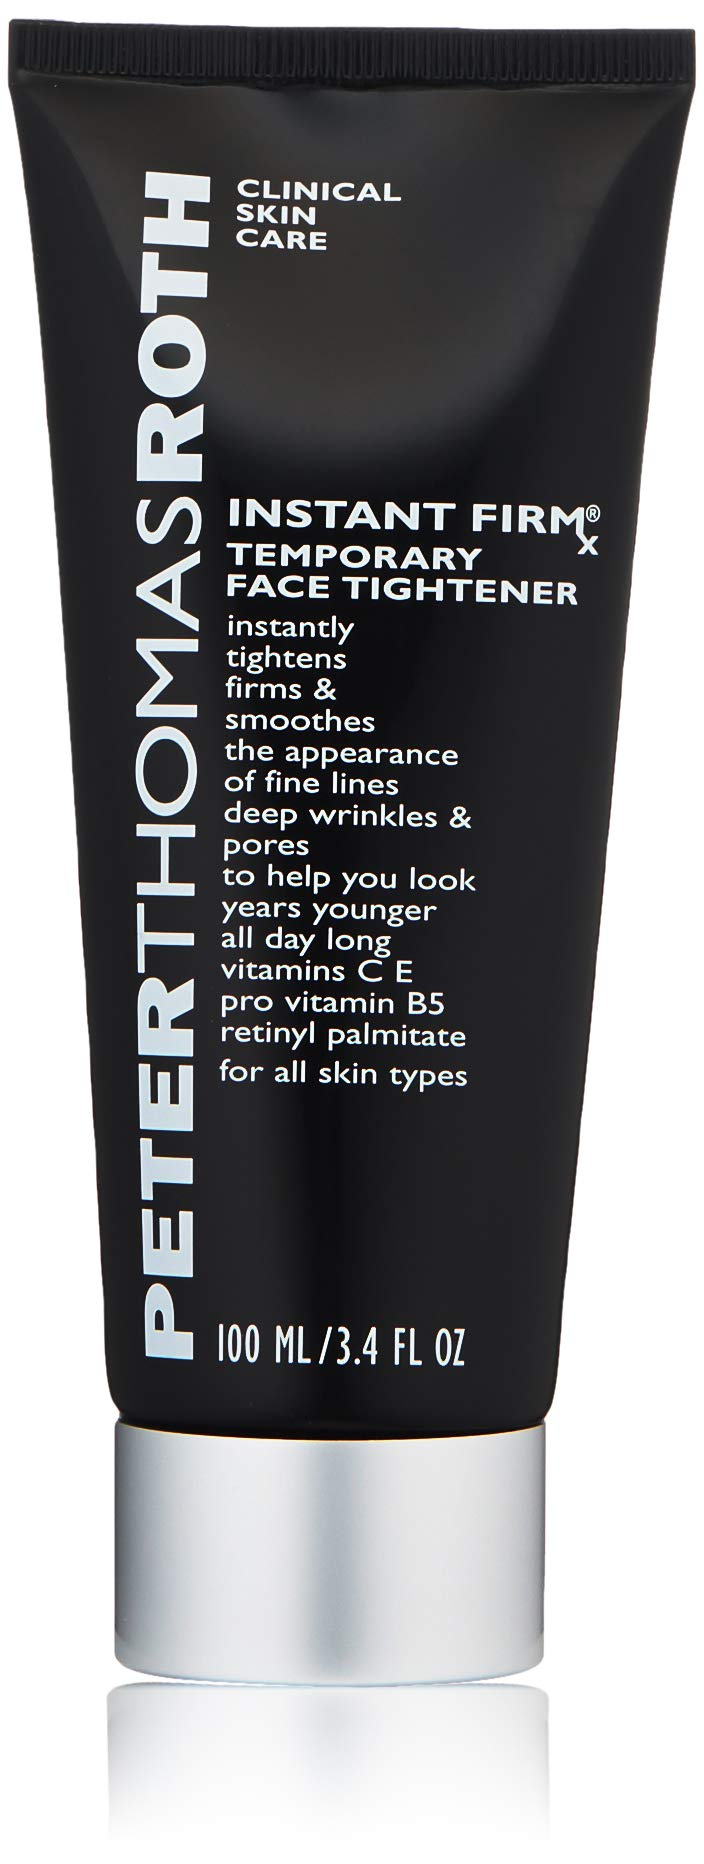 Peter Thomas Roth Instant Firmx Temporary Face Tightener, 3.4 Fl. Oz.